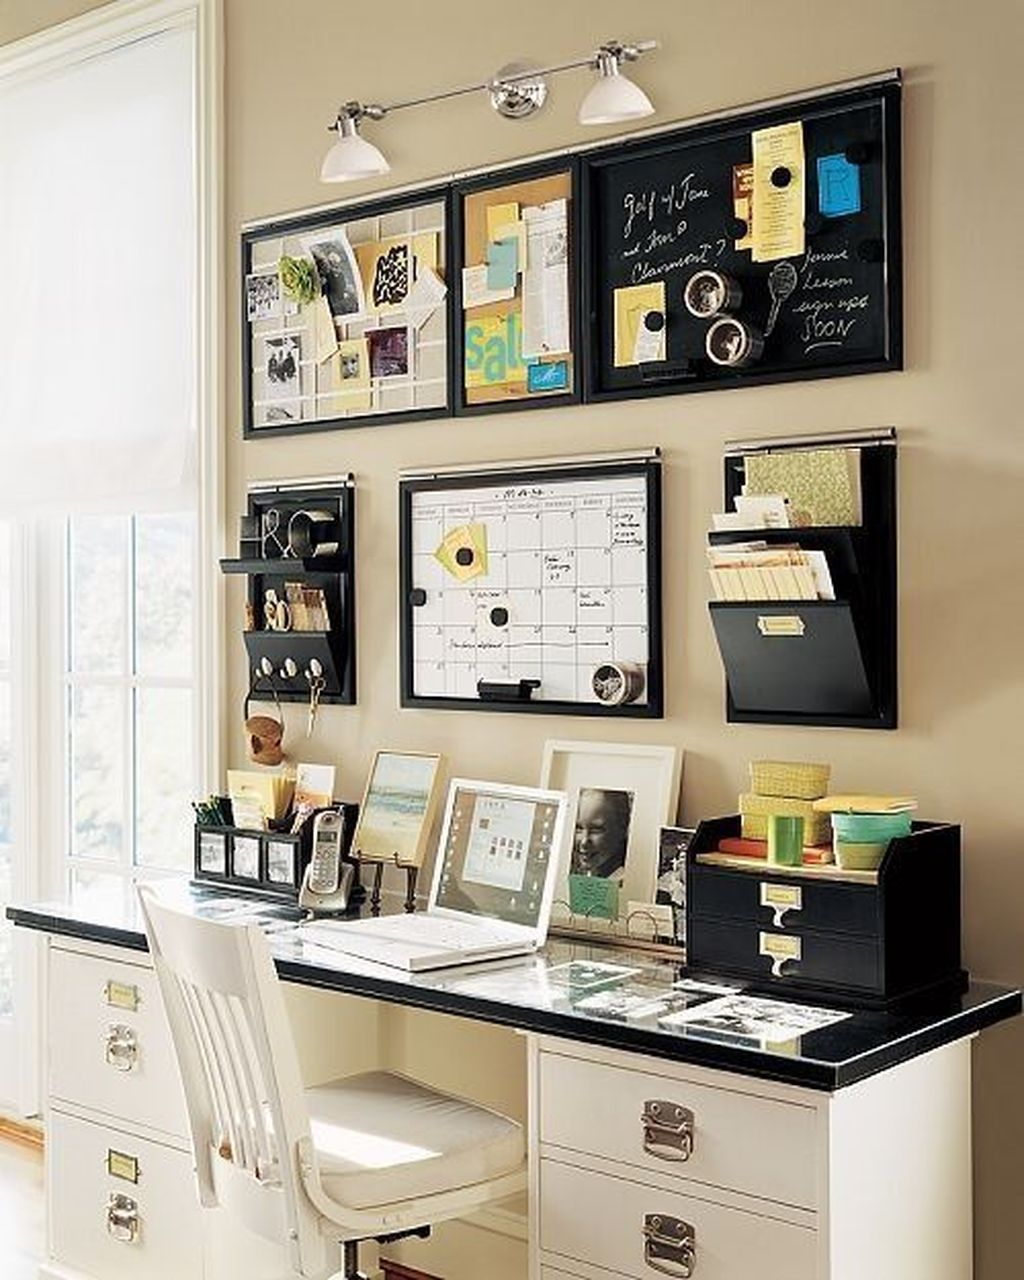 20 Easy And Cheap Diy Home Office Organization Ideas Trenduhome Decor Furniture